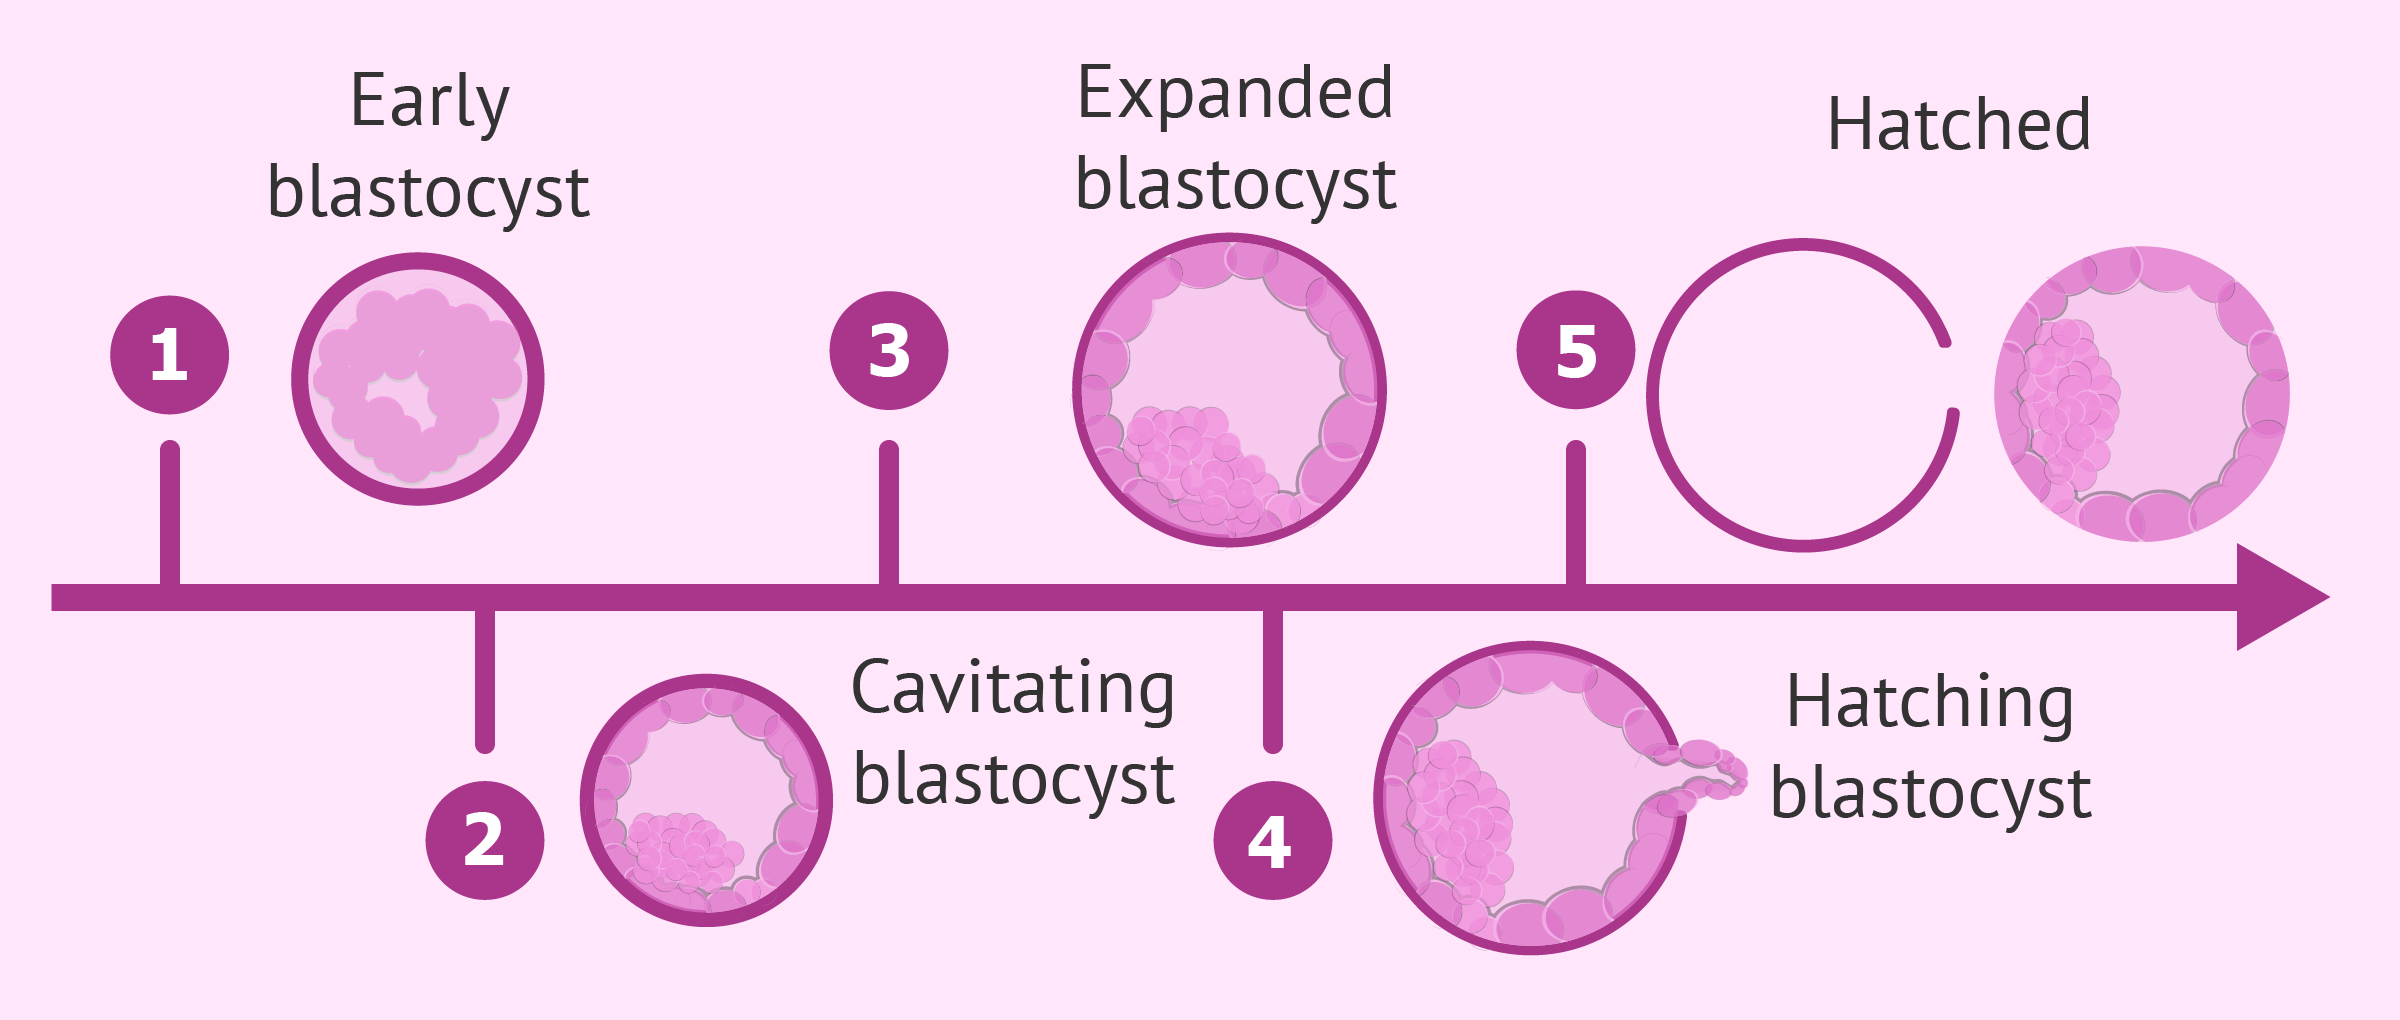 Development up to blastocyst stage